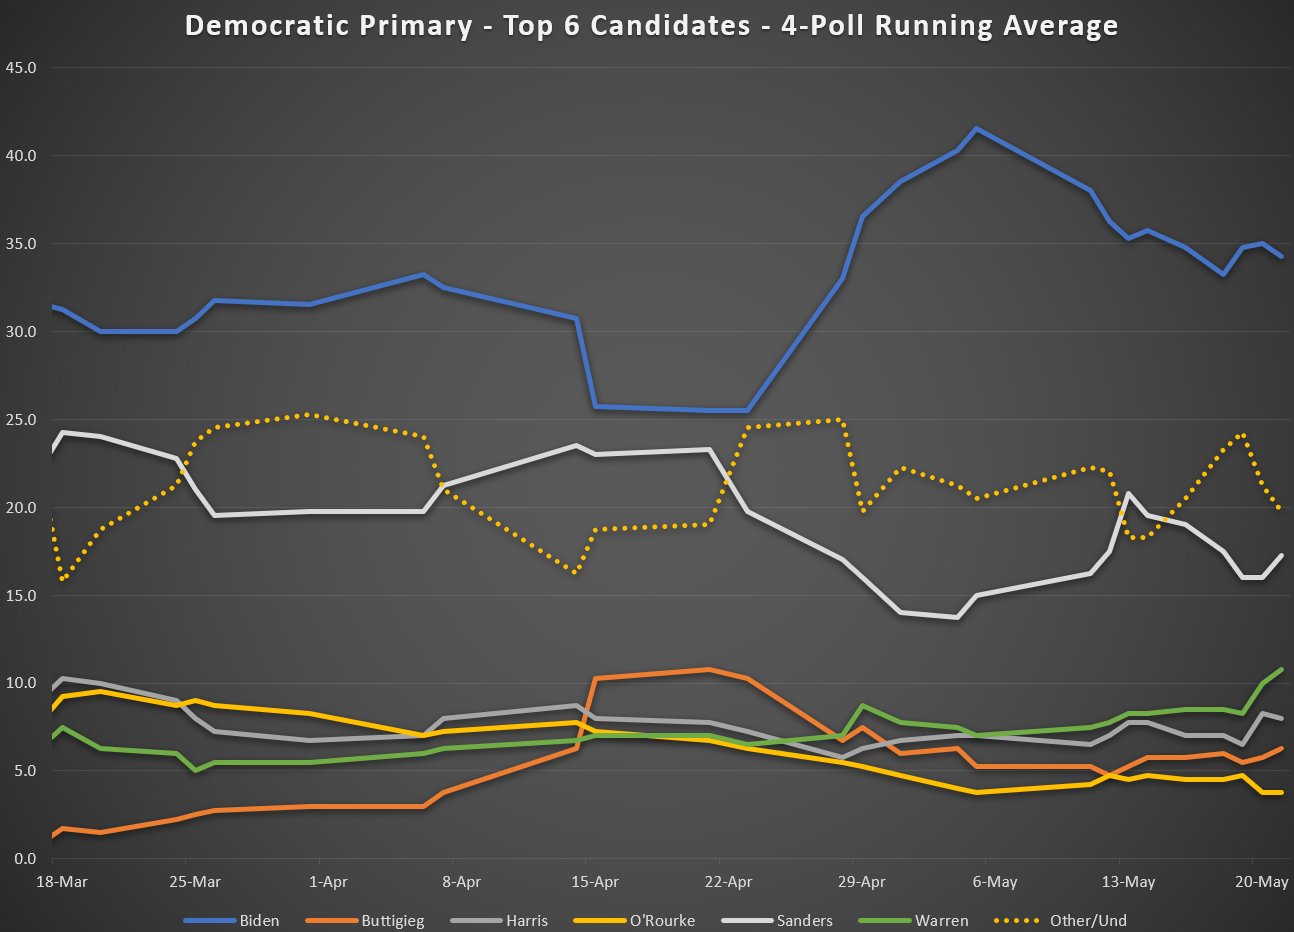 2020 Democratic Primary as of May 2019